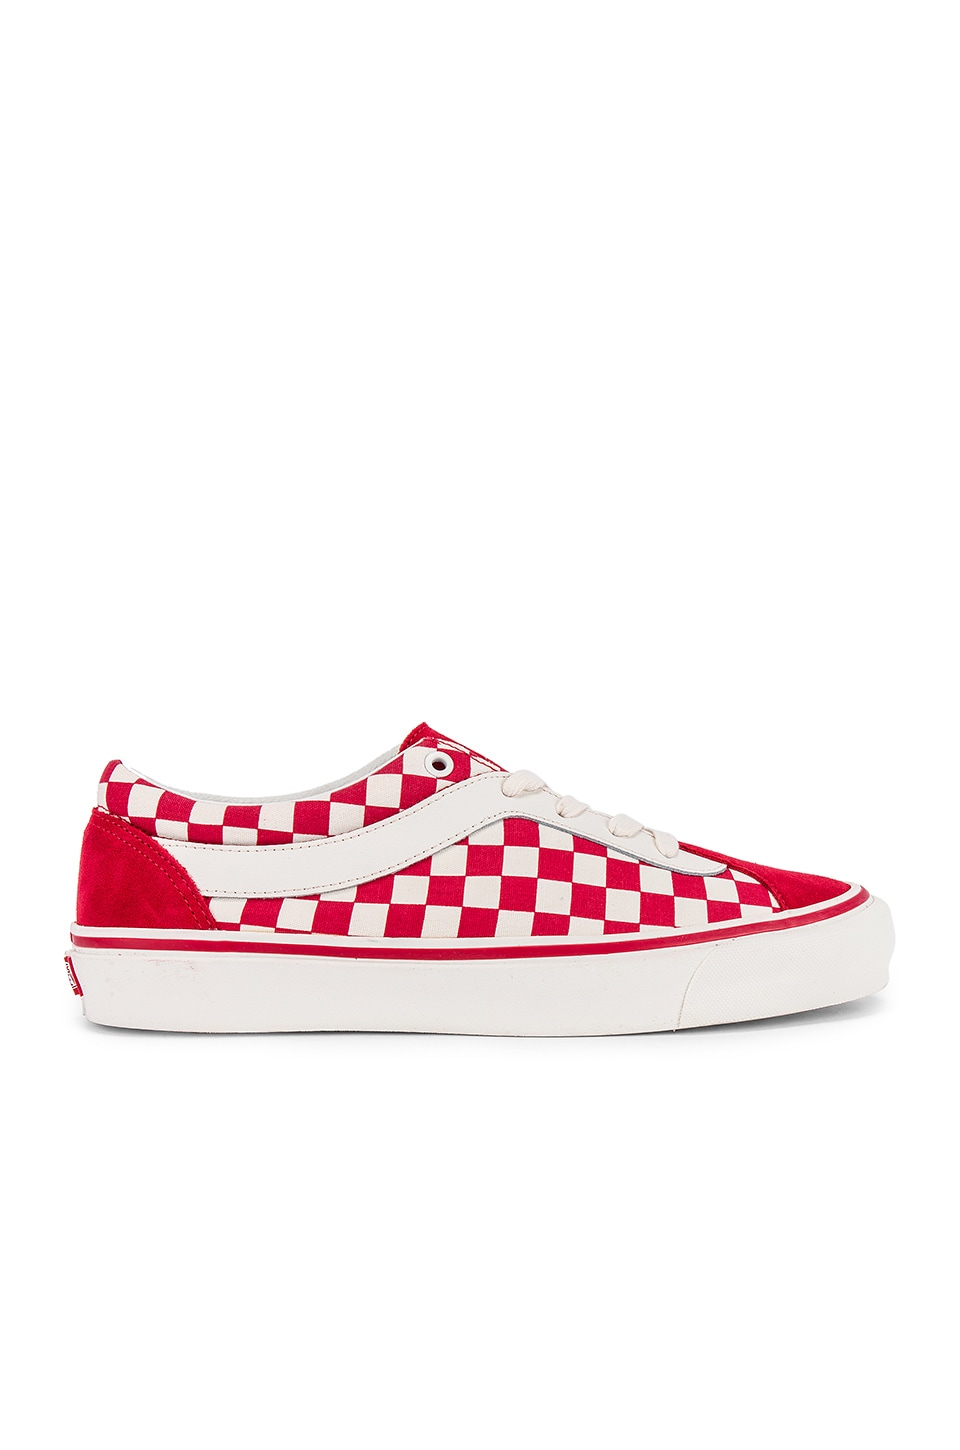 Vans Era Bold Checkered Sneaker in Racing Red & Marshmallow